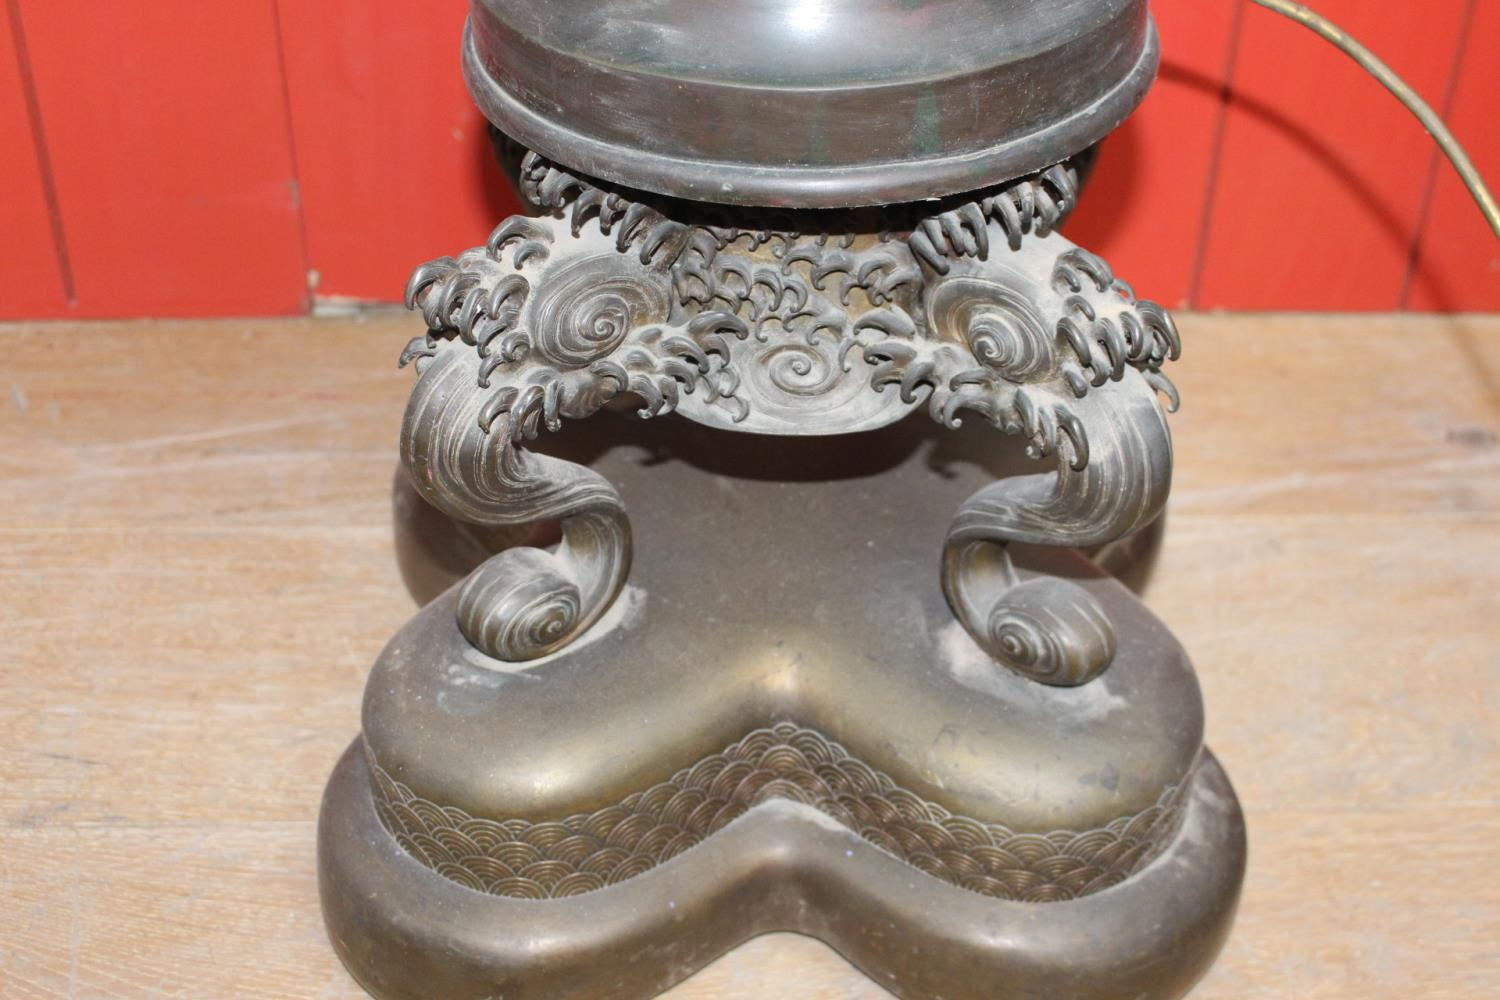 Bronze table lamp in the form of a Japanese urn - Image 2 of 2